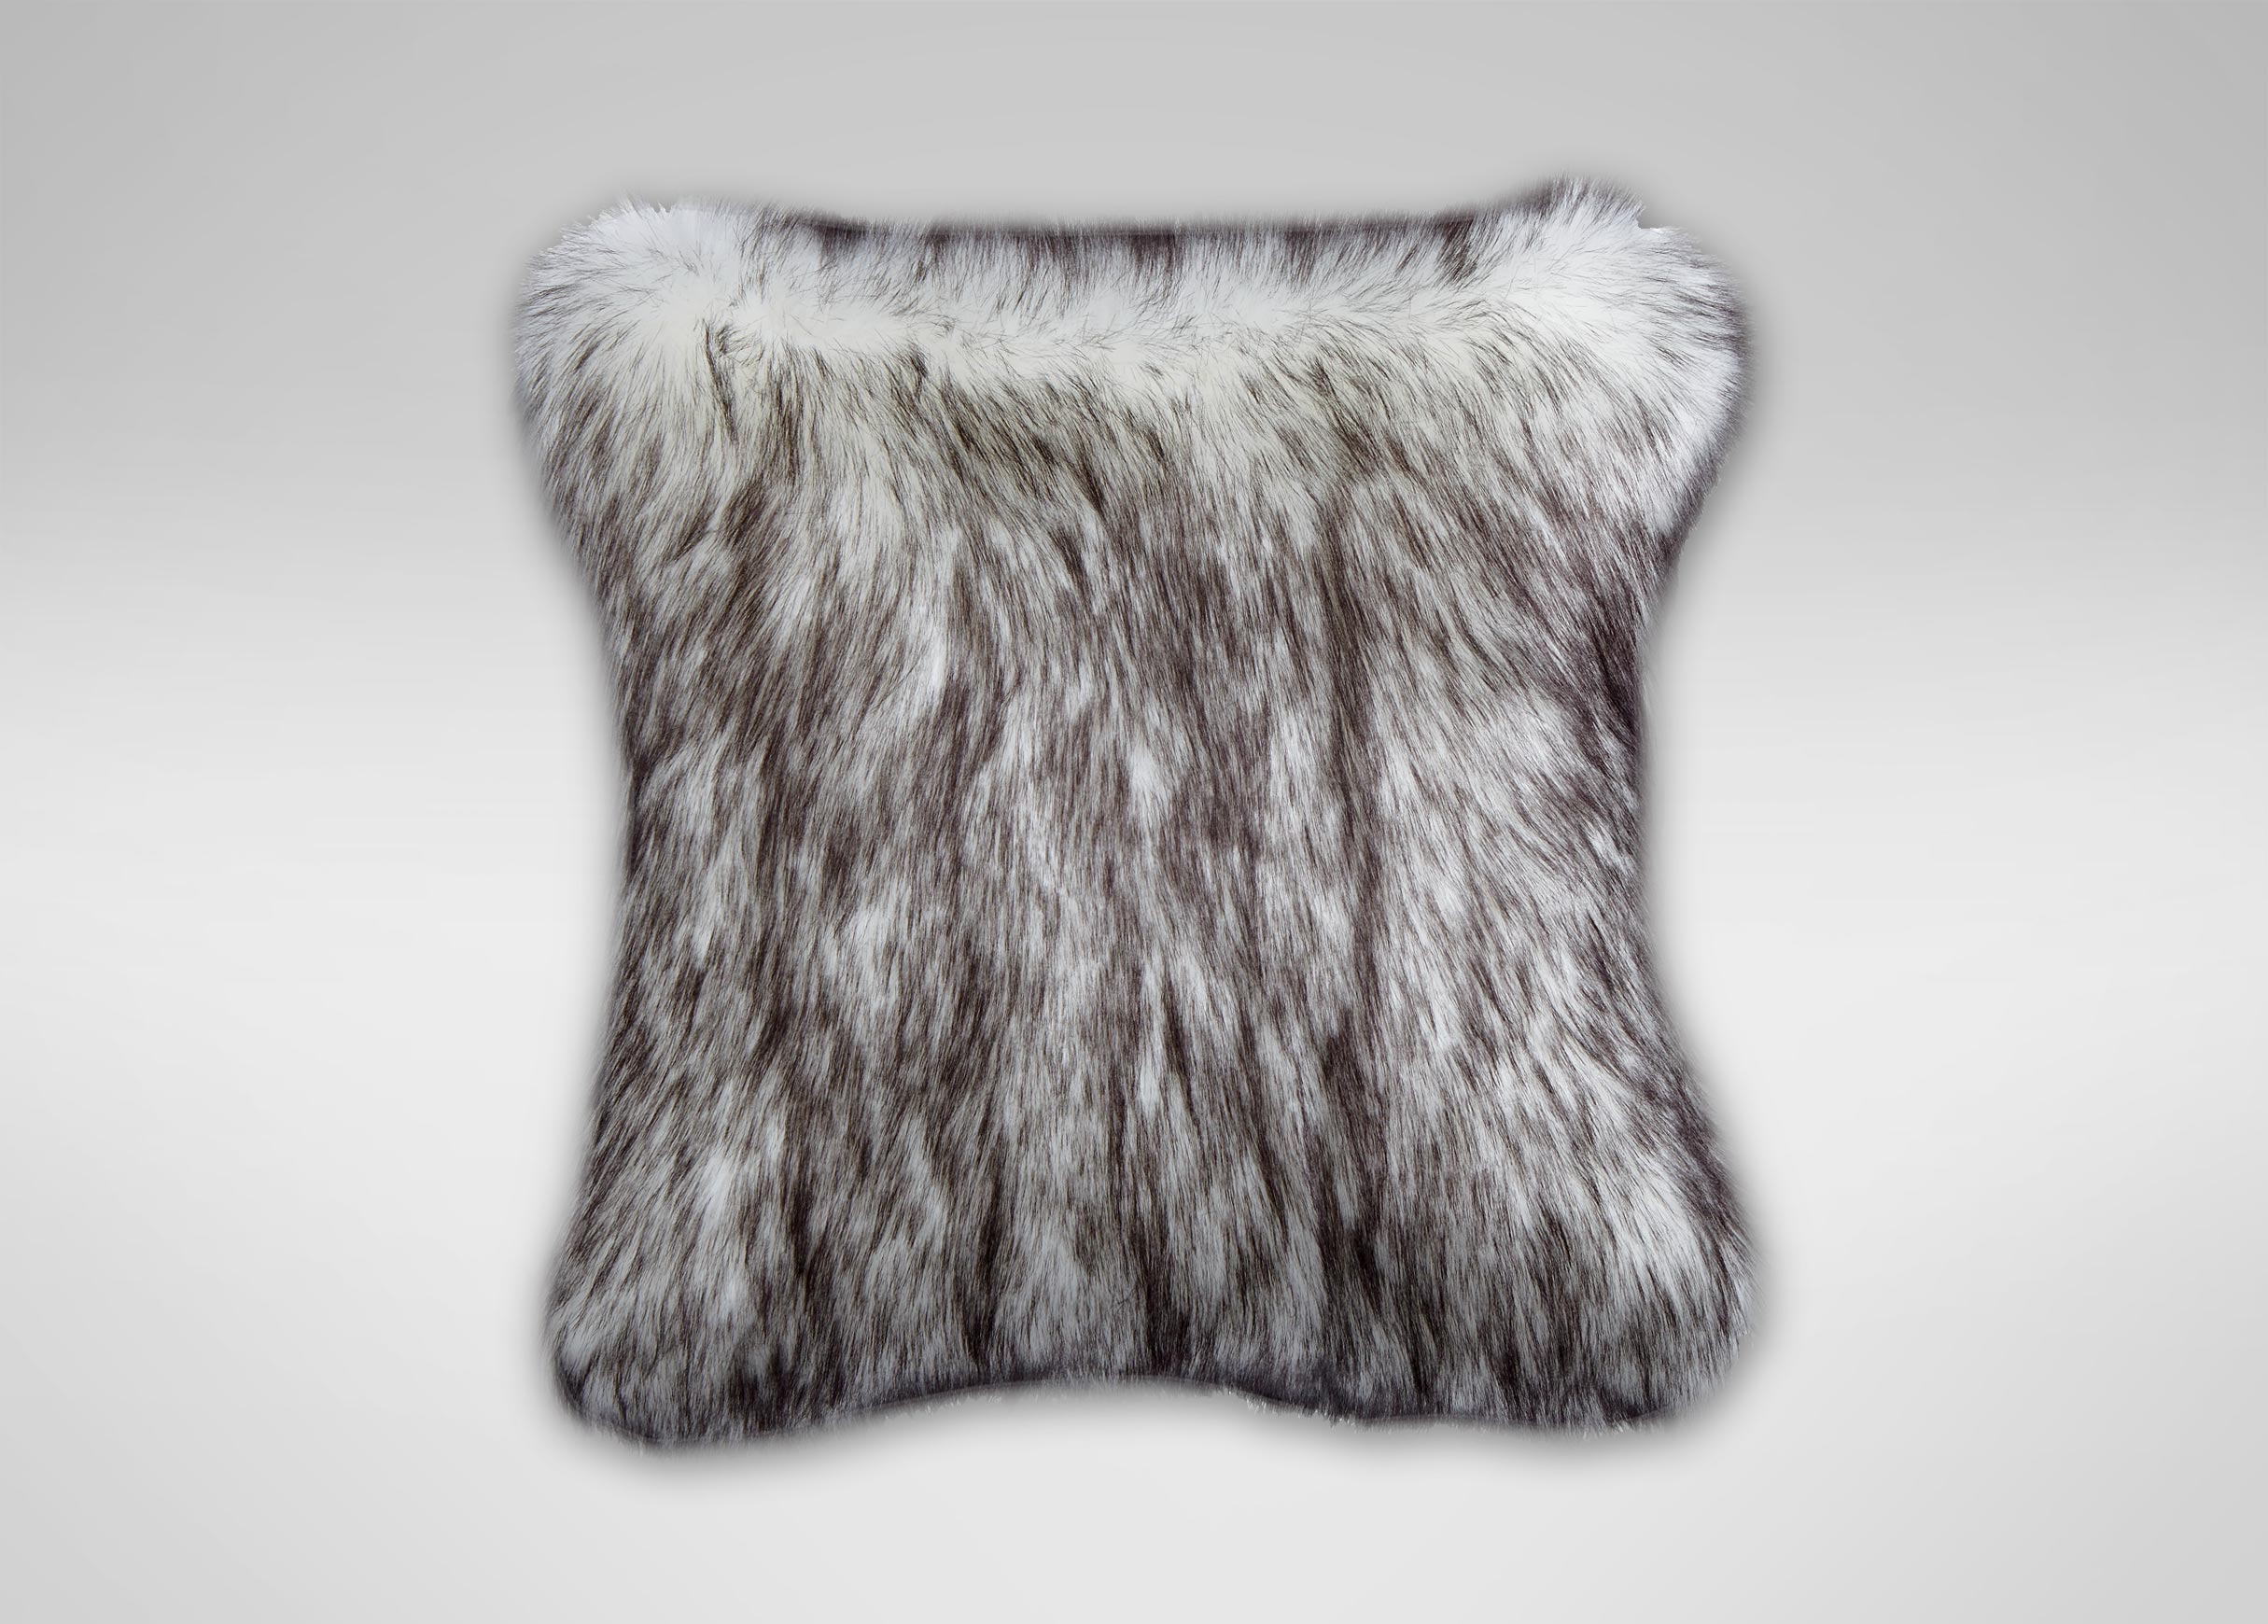 cushion gild ii x pillow fur product co and gildco